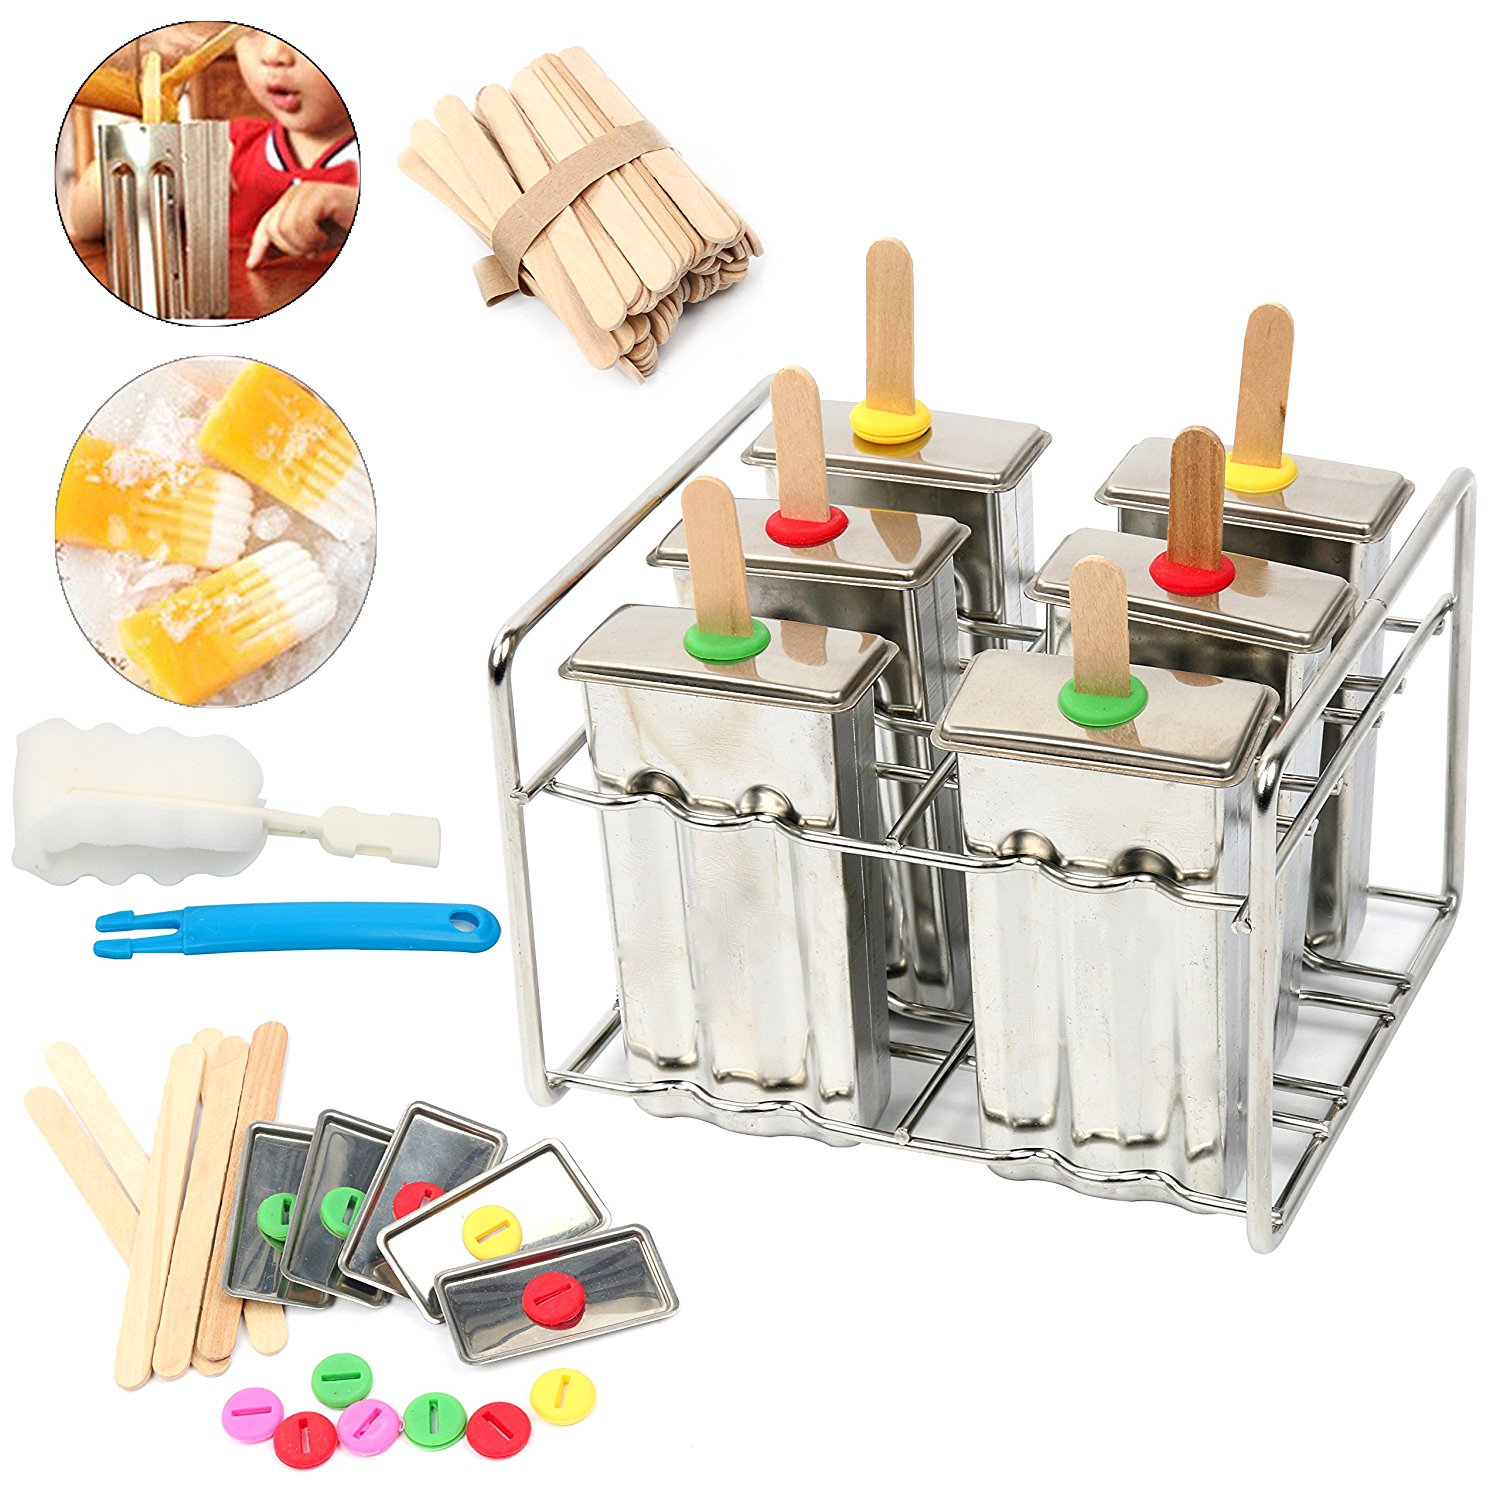 Stainless Steel Ice Lolly Popsicle Molds Kit 6Pcs Ice Pop Makers With Tray include 50 Reusable Bamboo Sticks Cleaning Brush